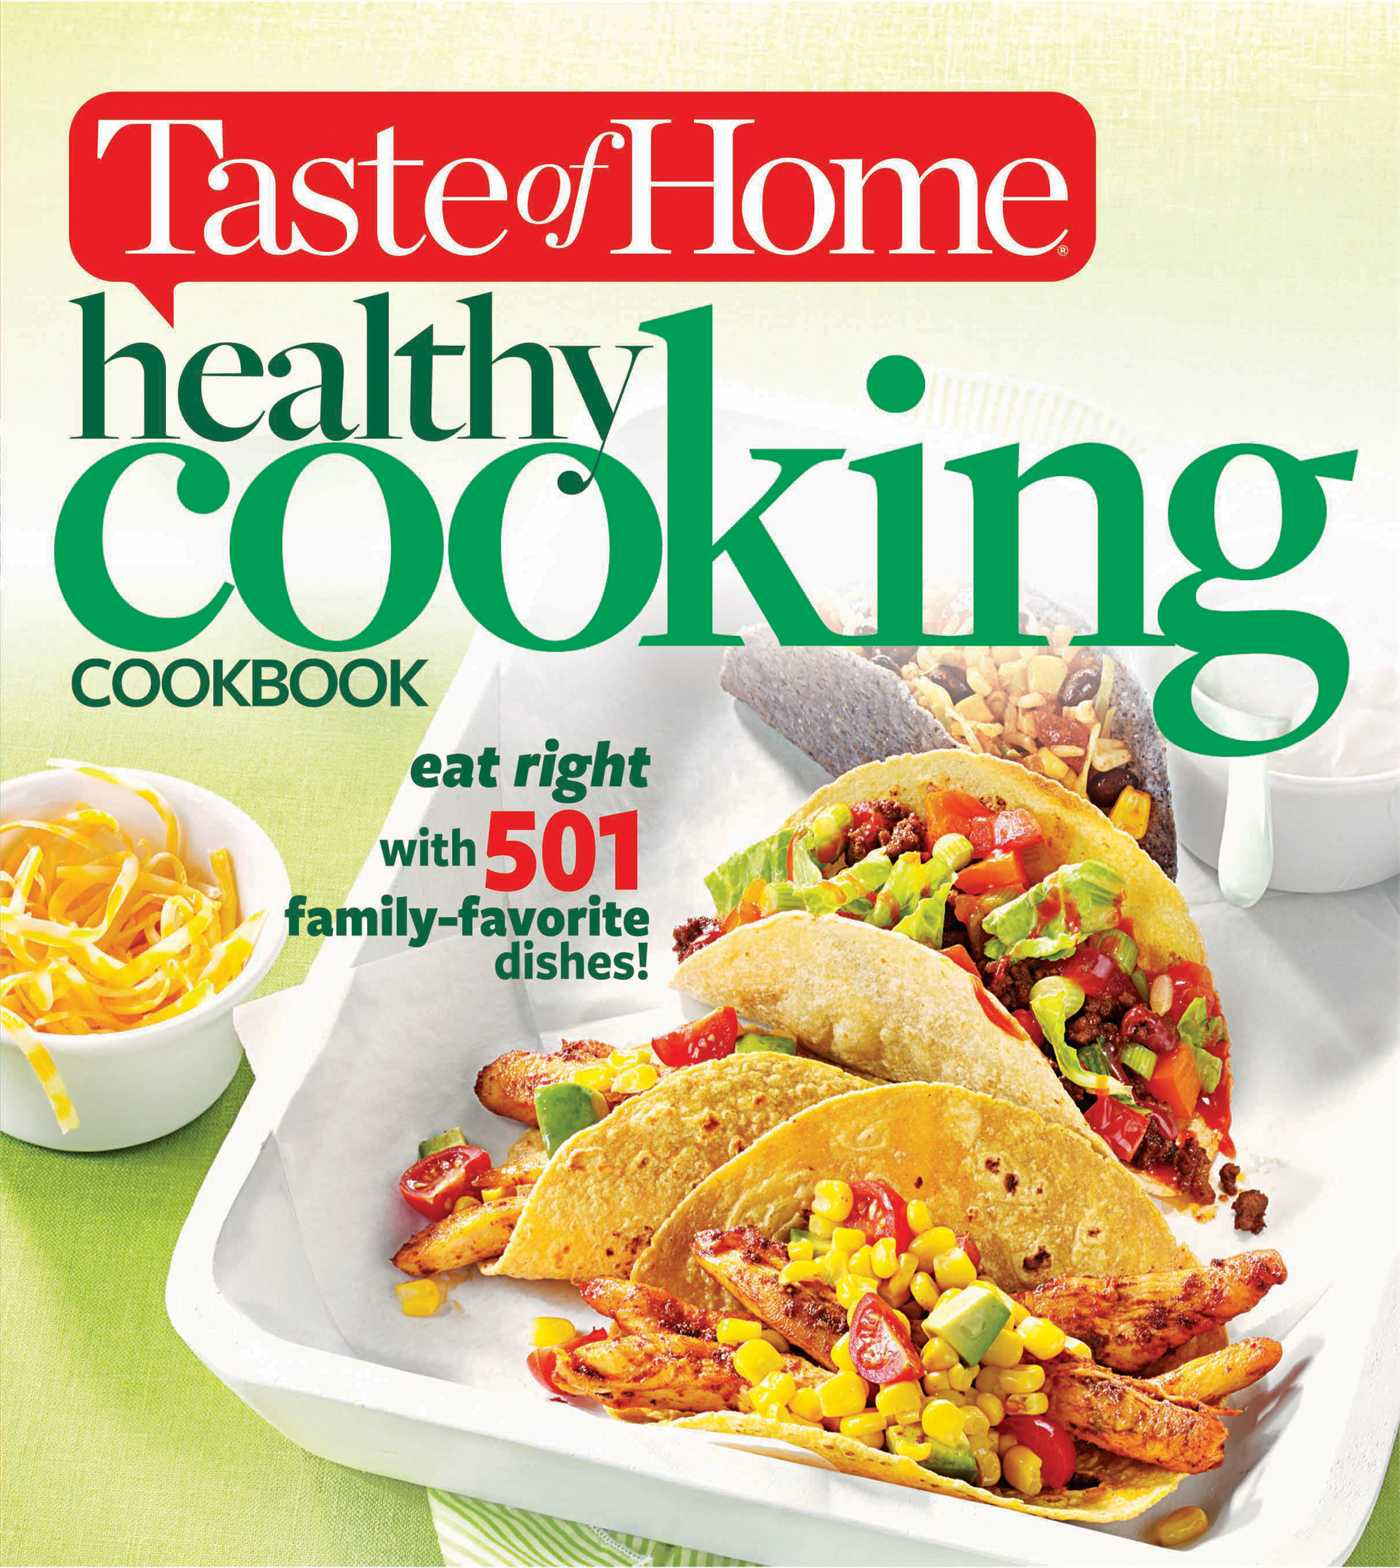 Taste of Home Healthy Cooking Cookbook : Eat Right with 501 Family-Favorite Dishes!